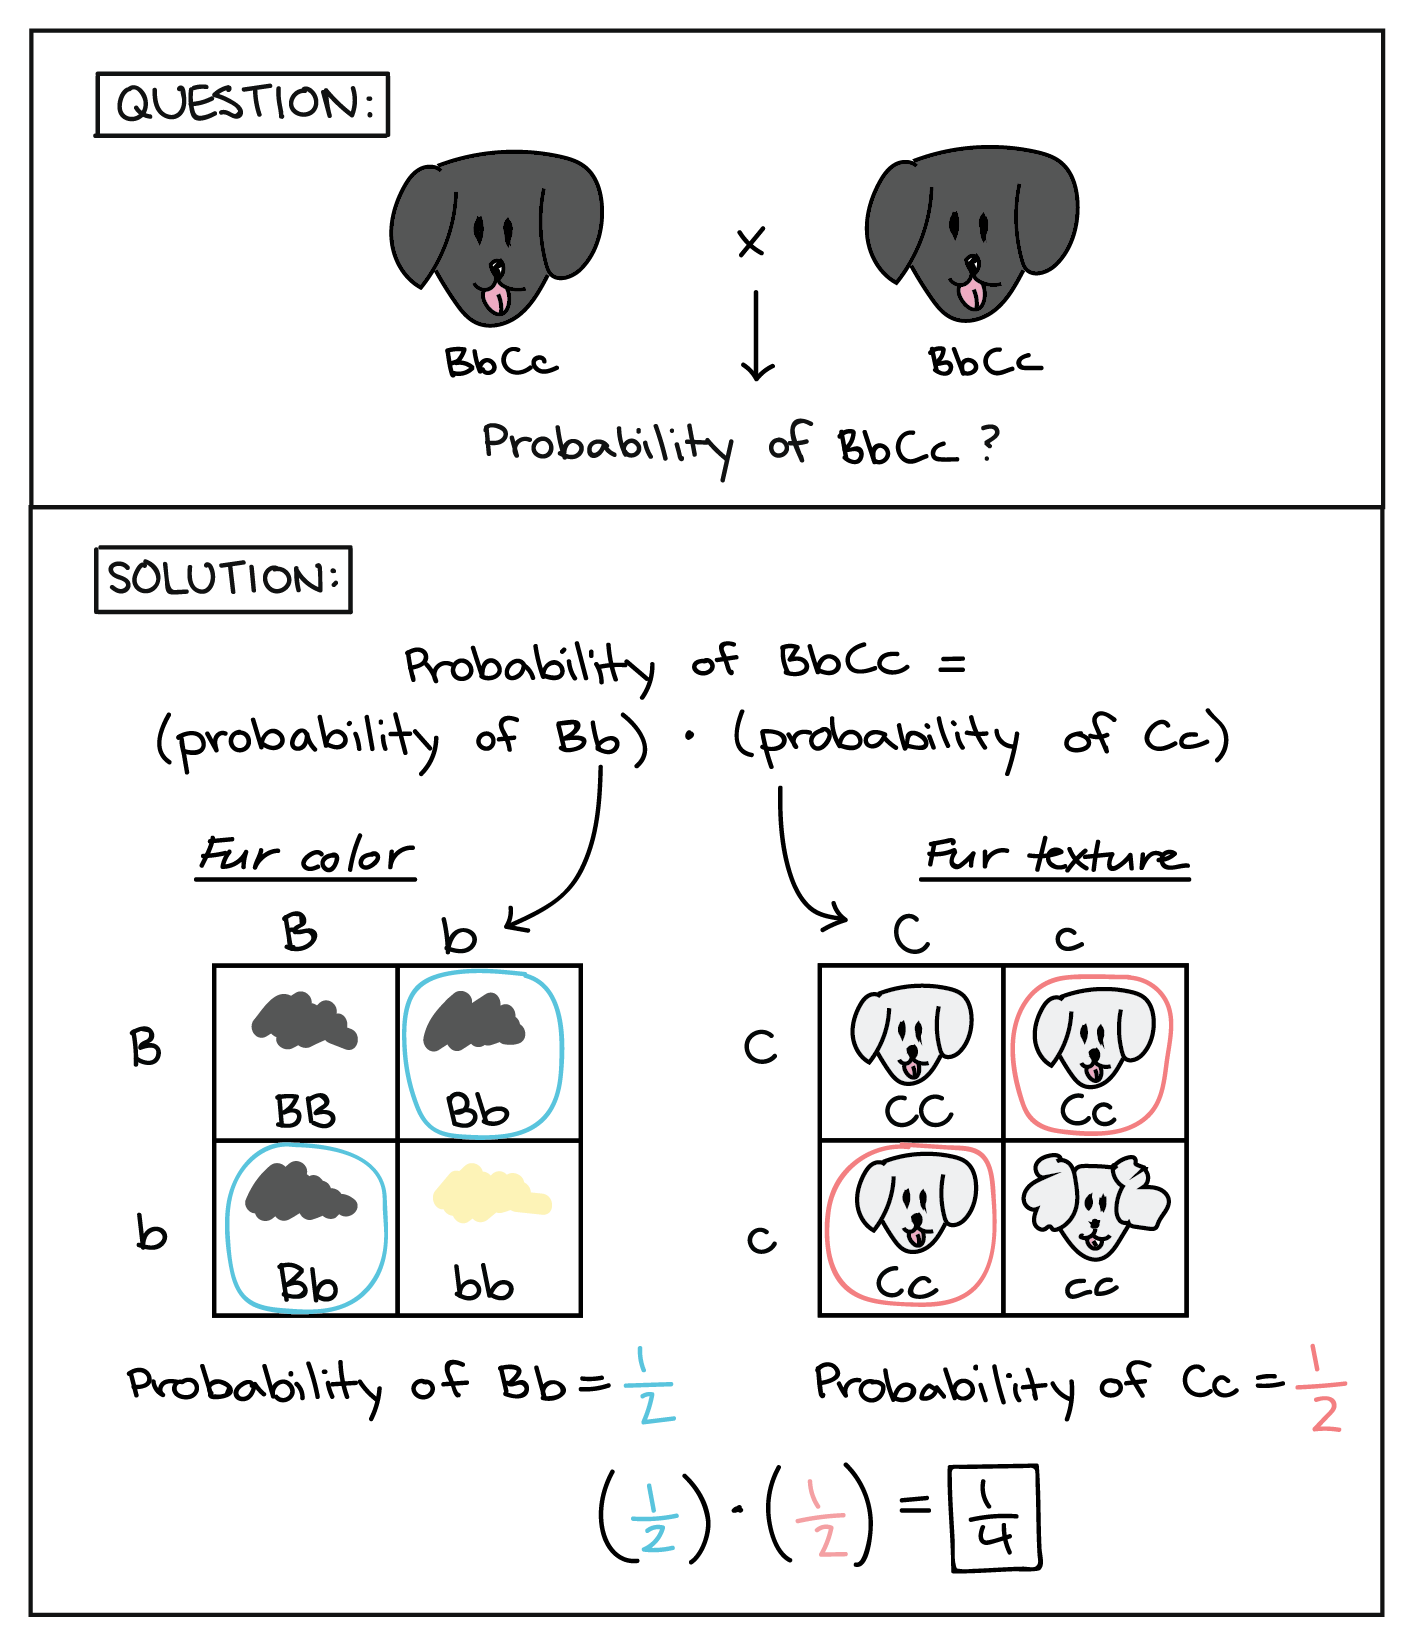 worksheet Dihybrid Cross Worksheet With Answers probabilities in genetics article khan academy how 2x2 punnett squares can be used conjunction with the product rule to determine probability of a particular genotype dihybrid cr